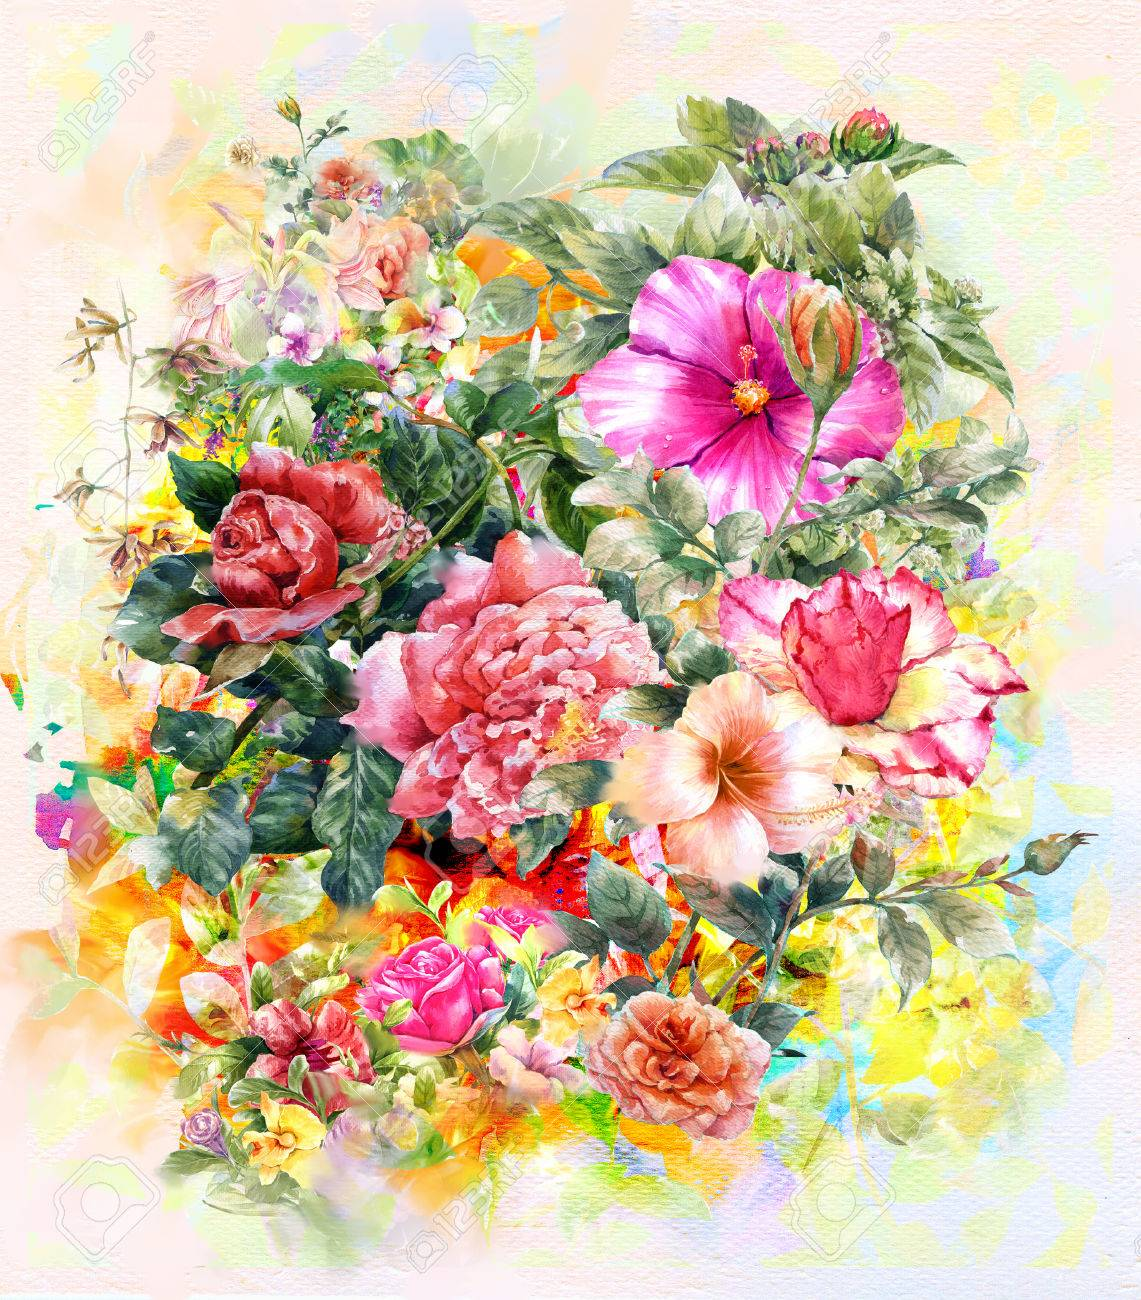 Bouquet Of Multicolored Flowers Watercolor Painting Style.digital ...